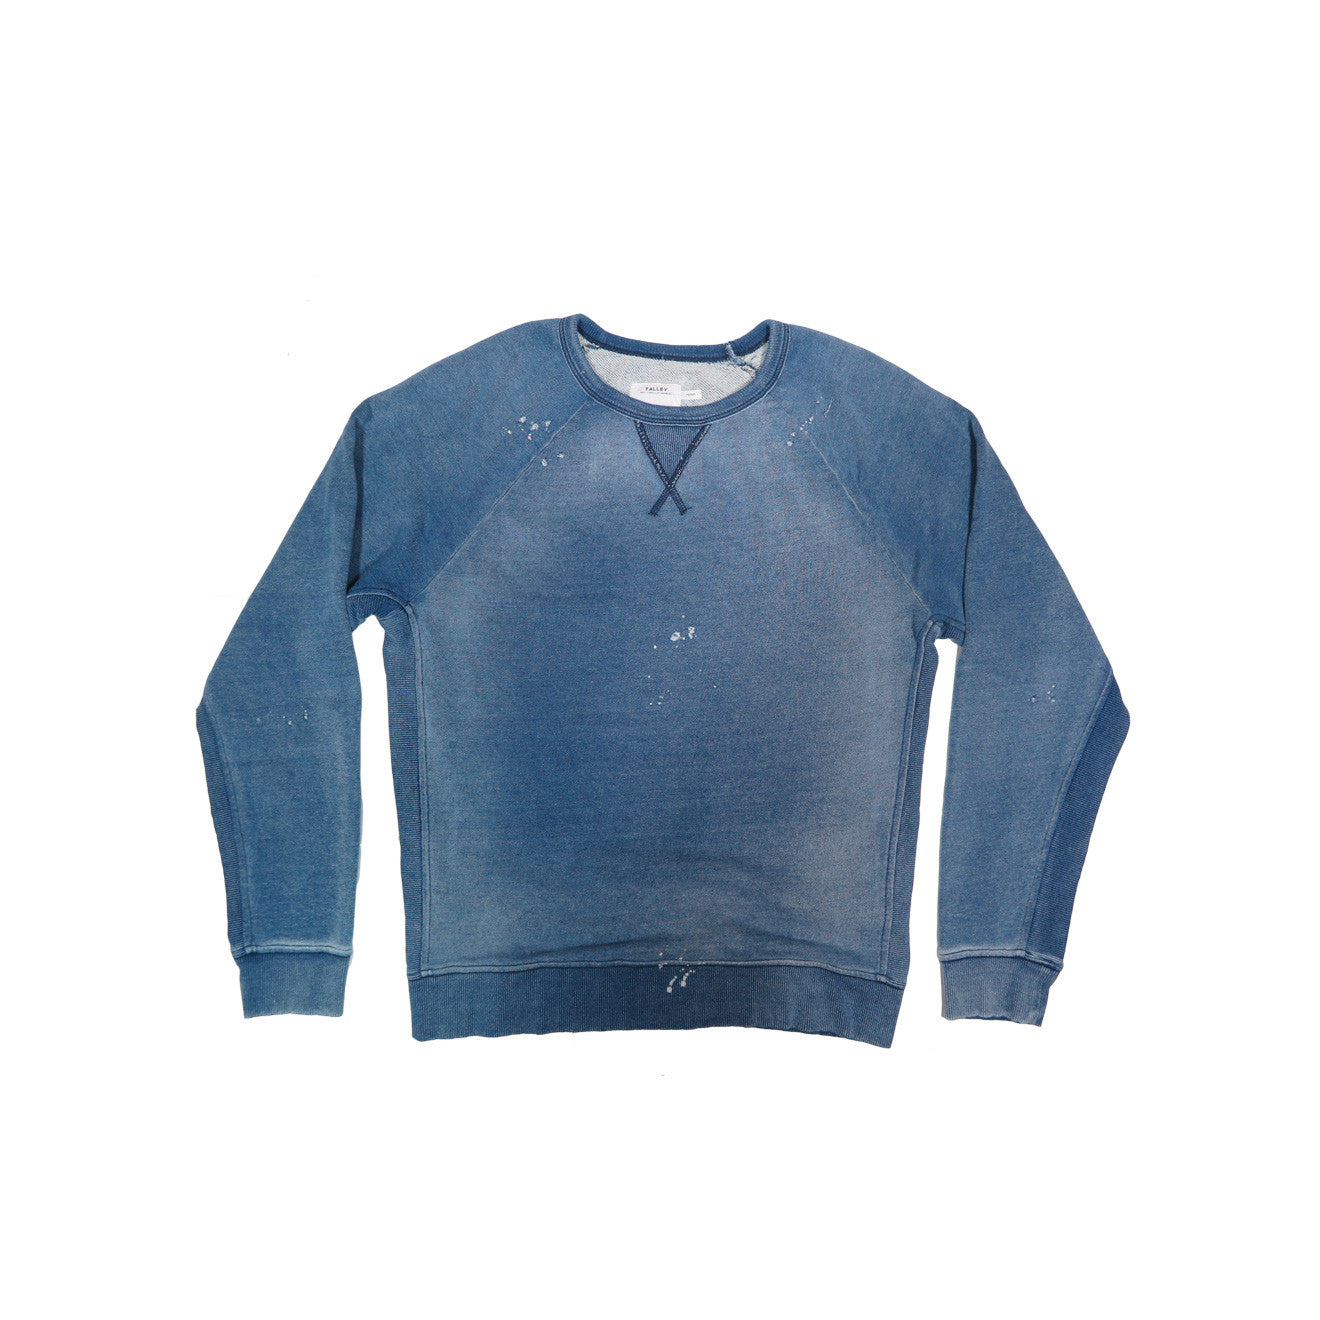 MEN'S VINTAGE INDIGO SWEATSHIRT | Instantly Available